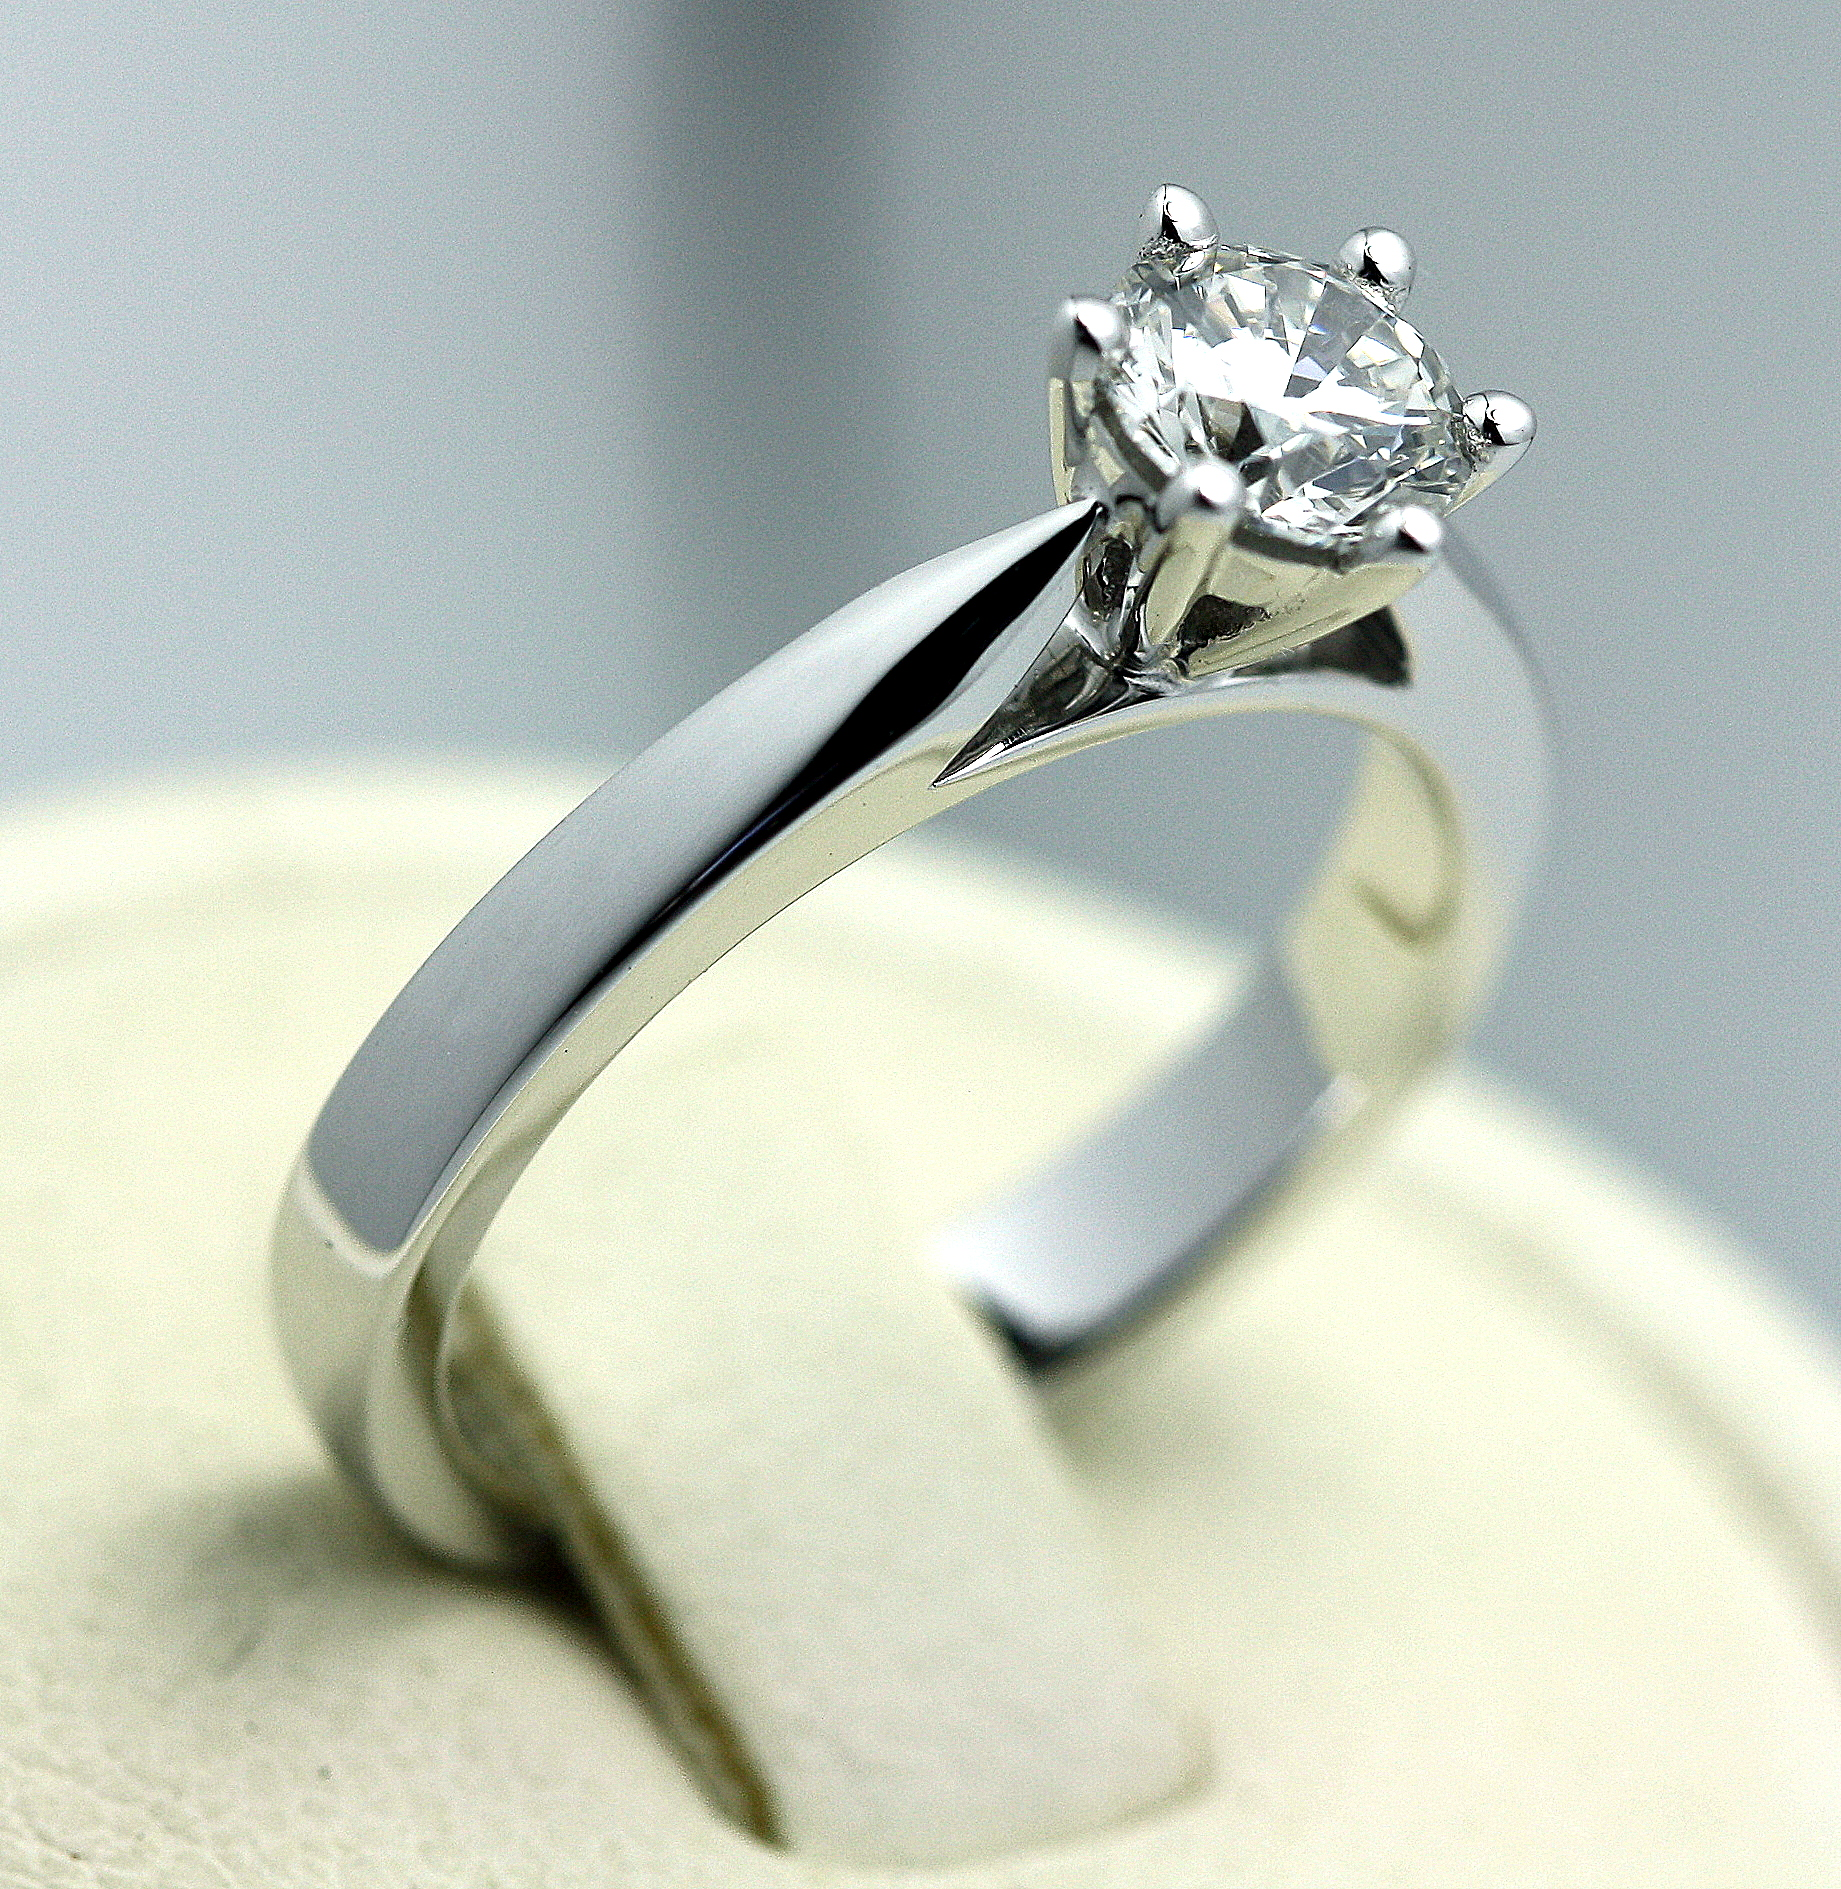 6_claw_solitare_18ct_white_gold_engagment_ring1.jpg